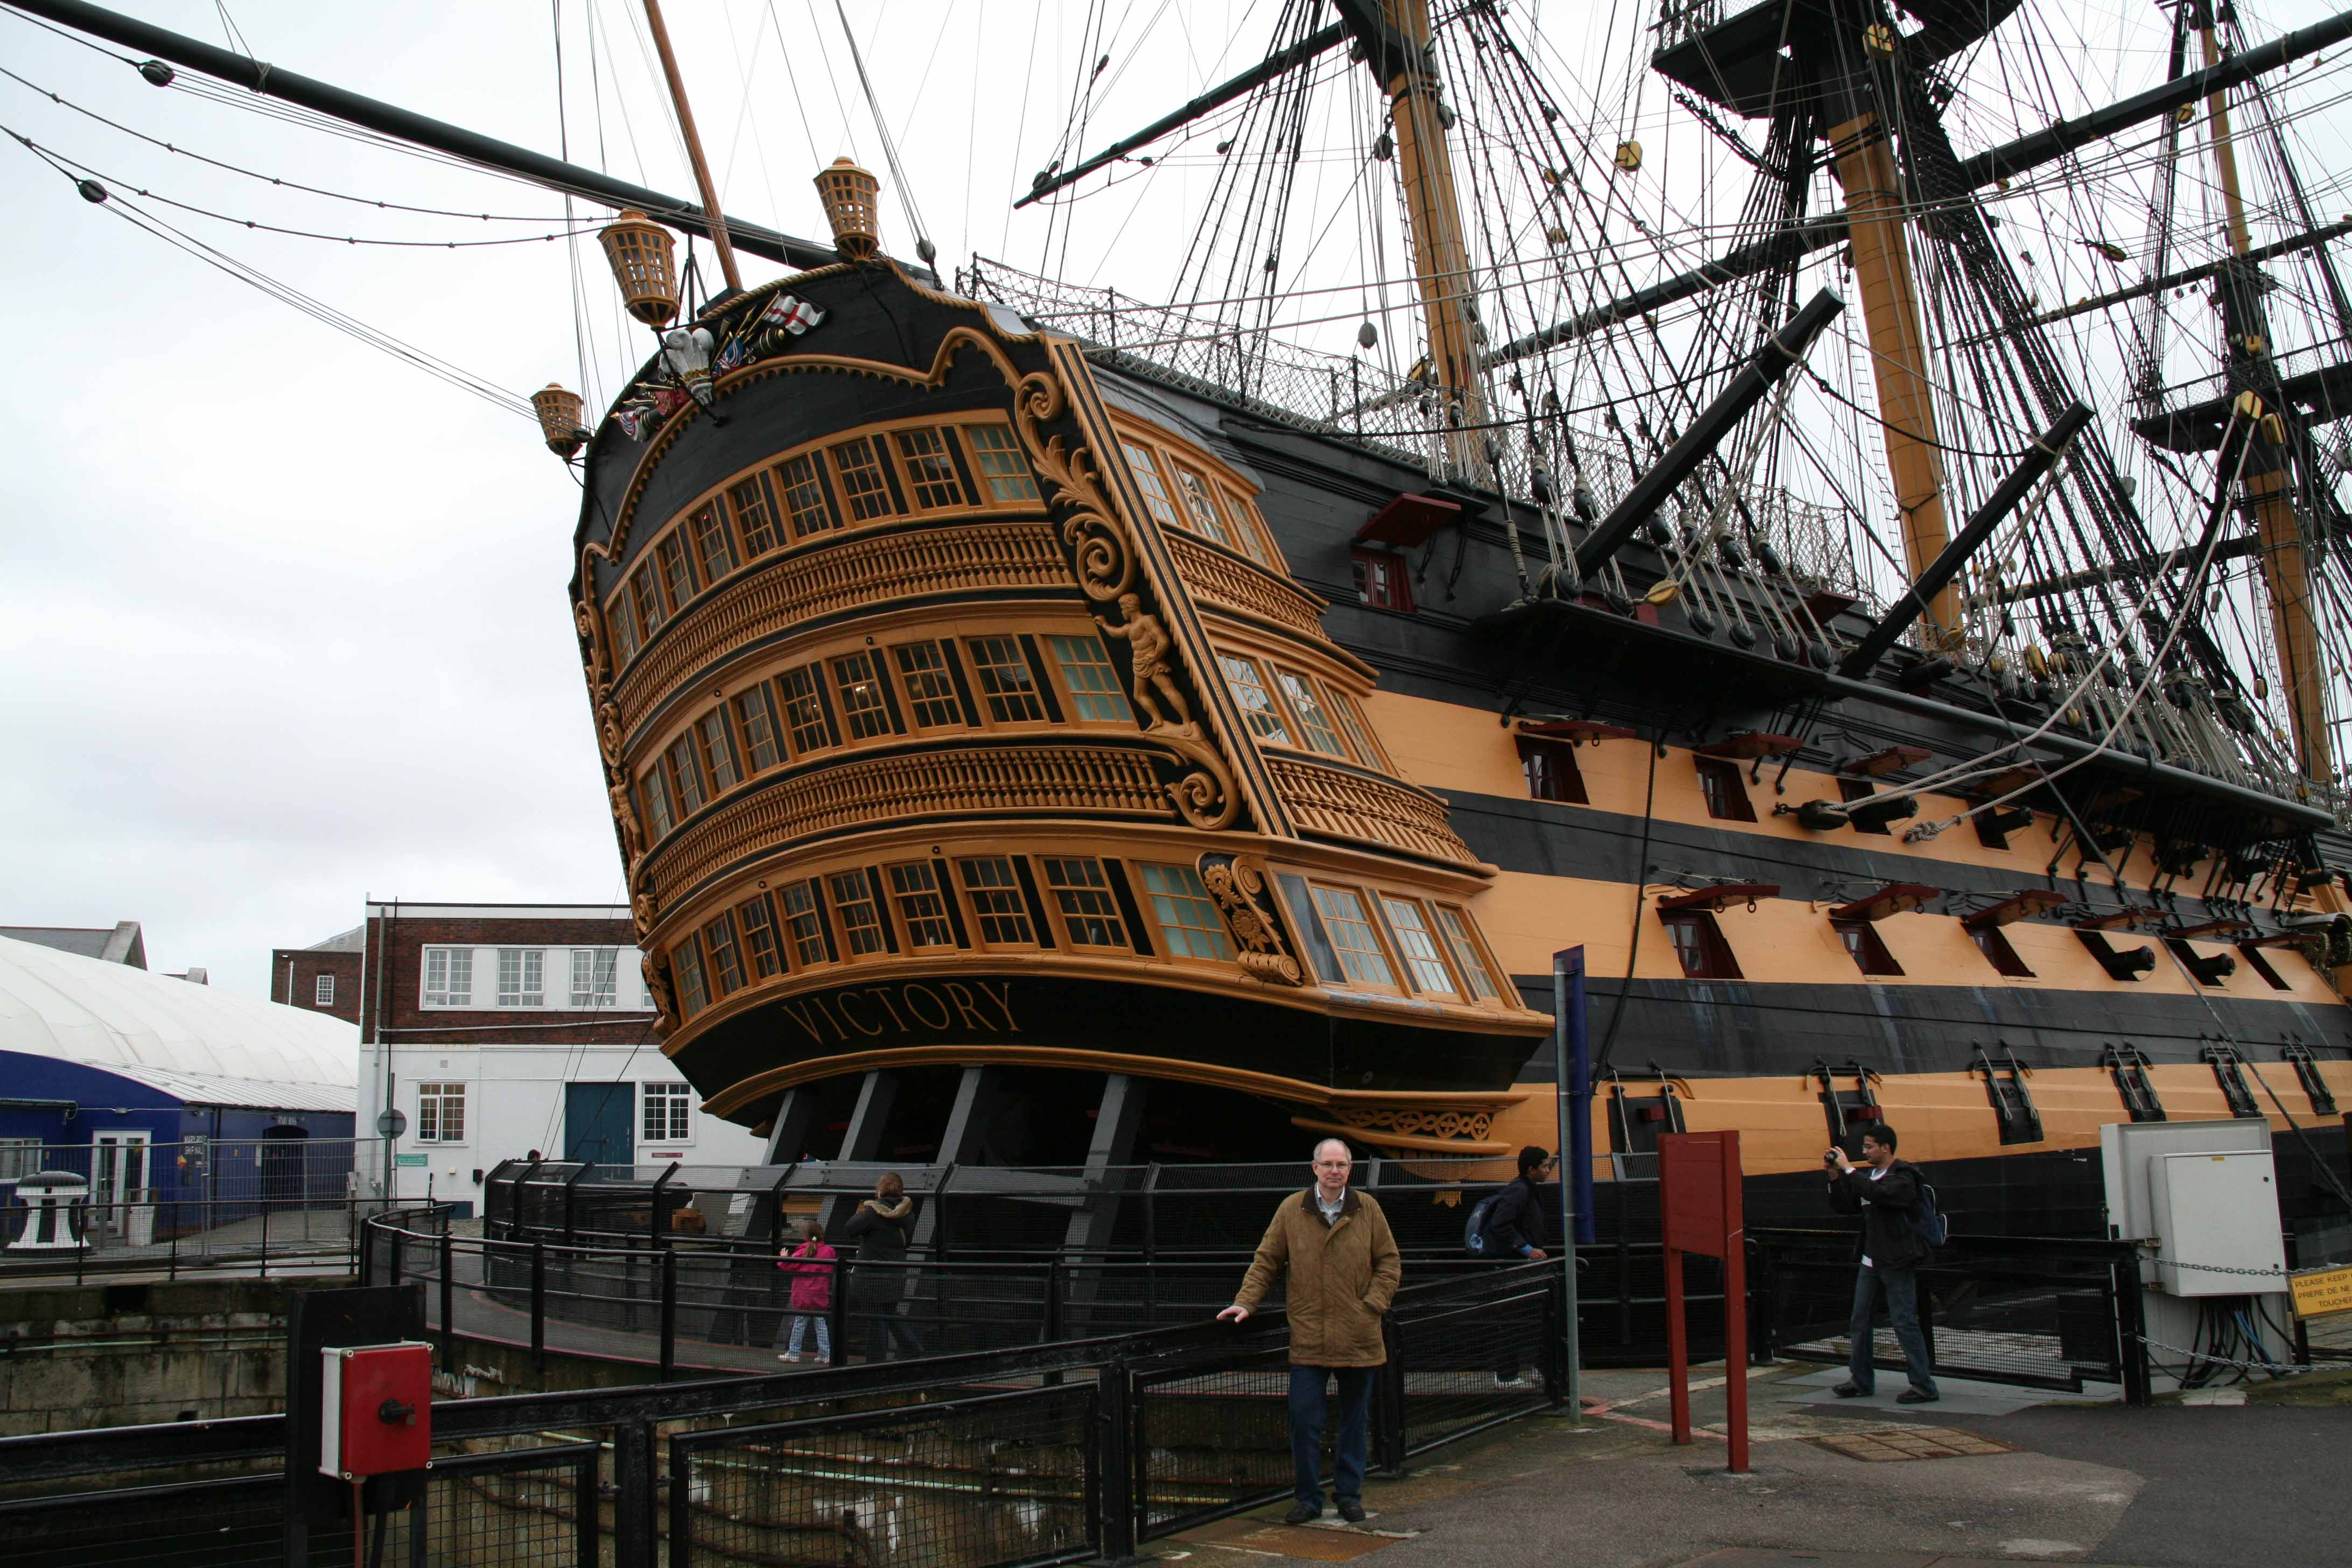 Hms victory portsmouth uk for Replica mobel england